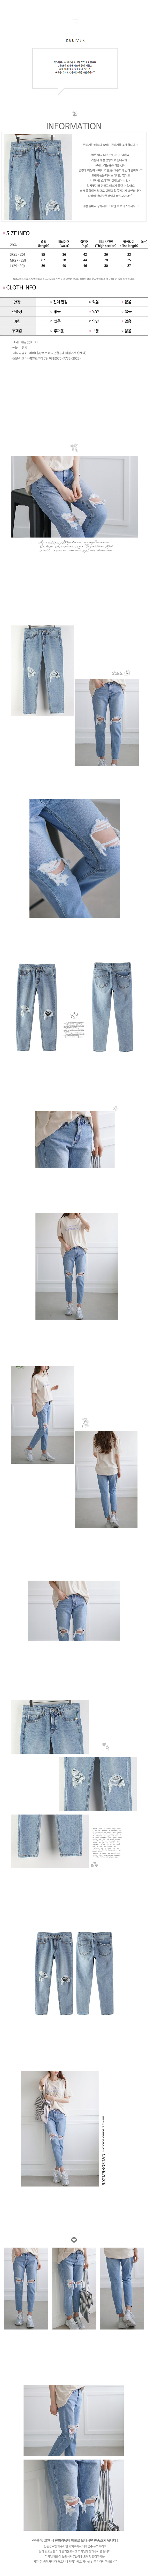 Woman ripped jeans vintage